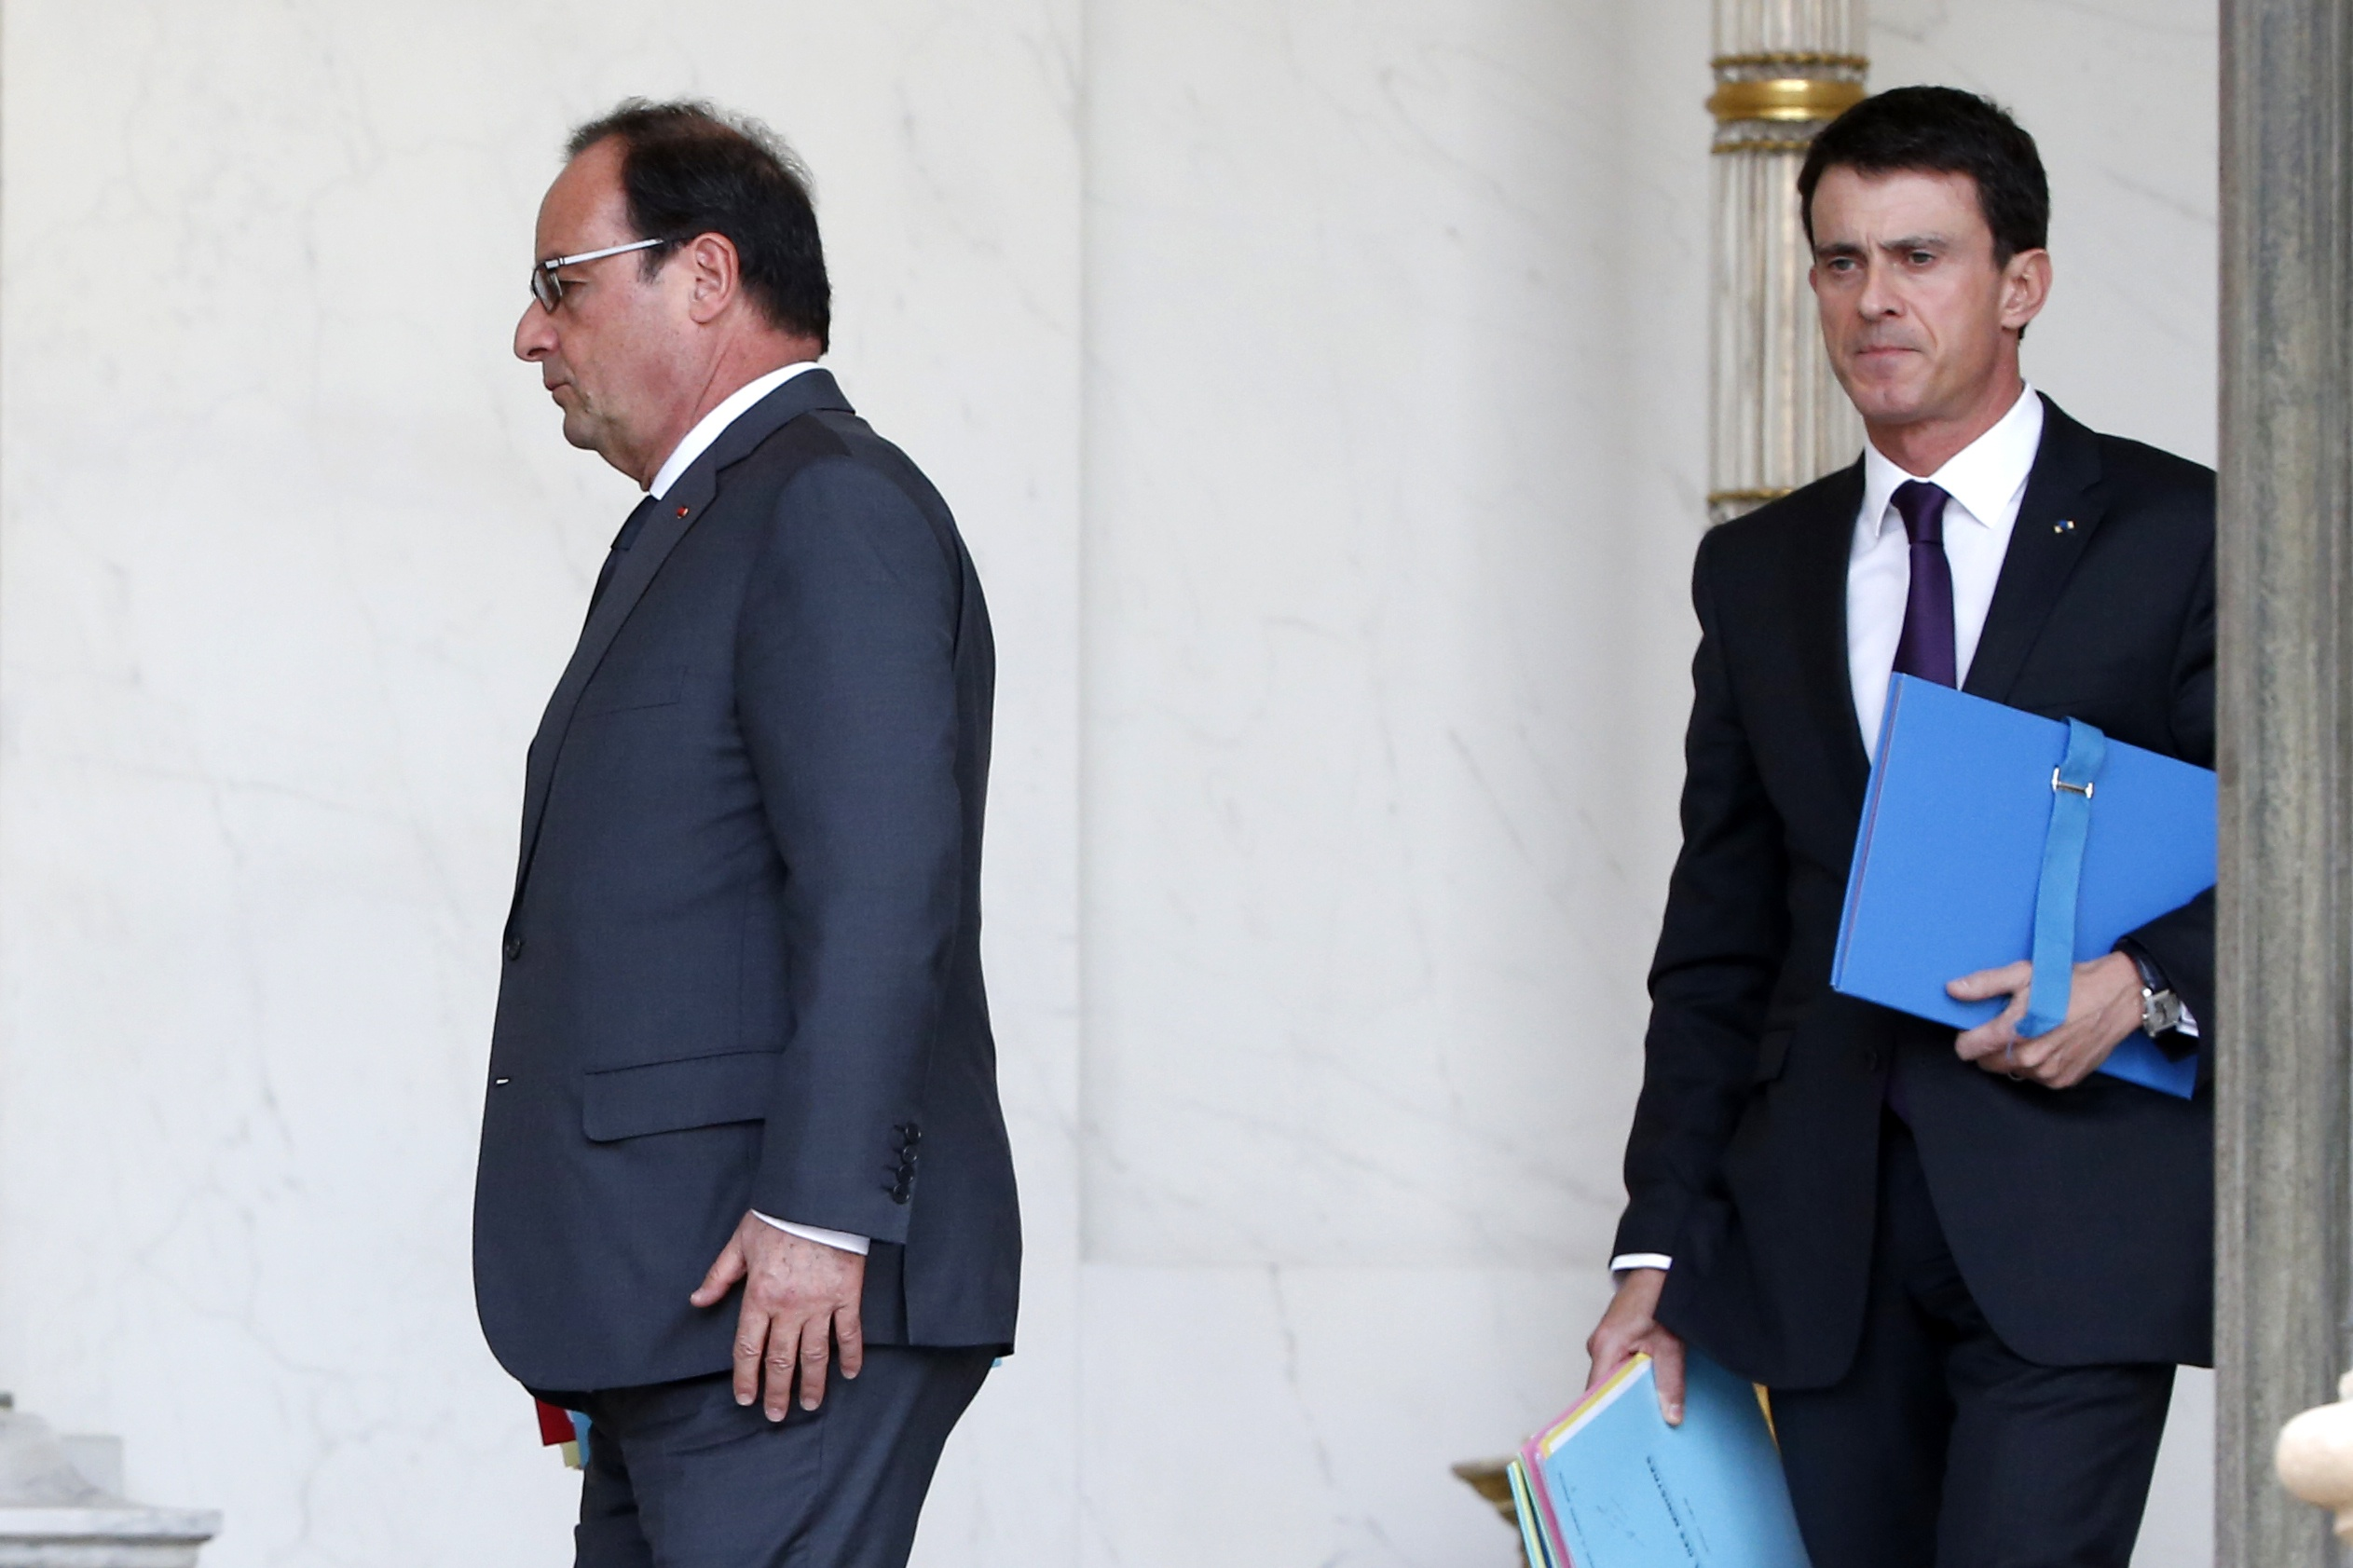 French Prime Minister Manuel Valls (right) leave at the end of the weekly cabinet meeting at the Elysee Palace in Paris, France, November 18, 2015. Photo: Reuters/FIle